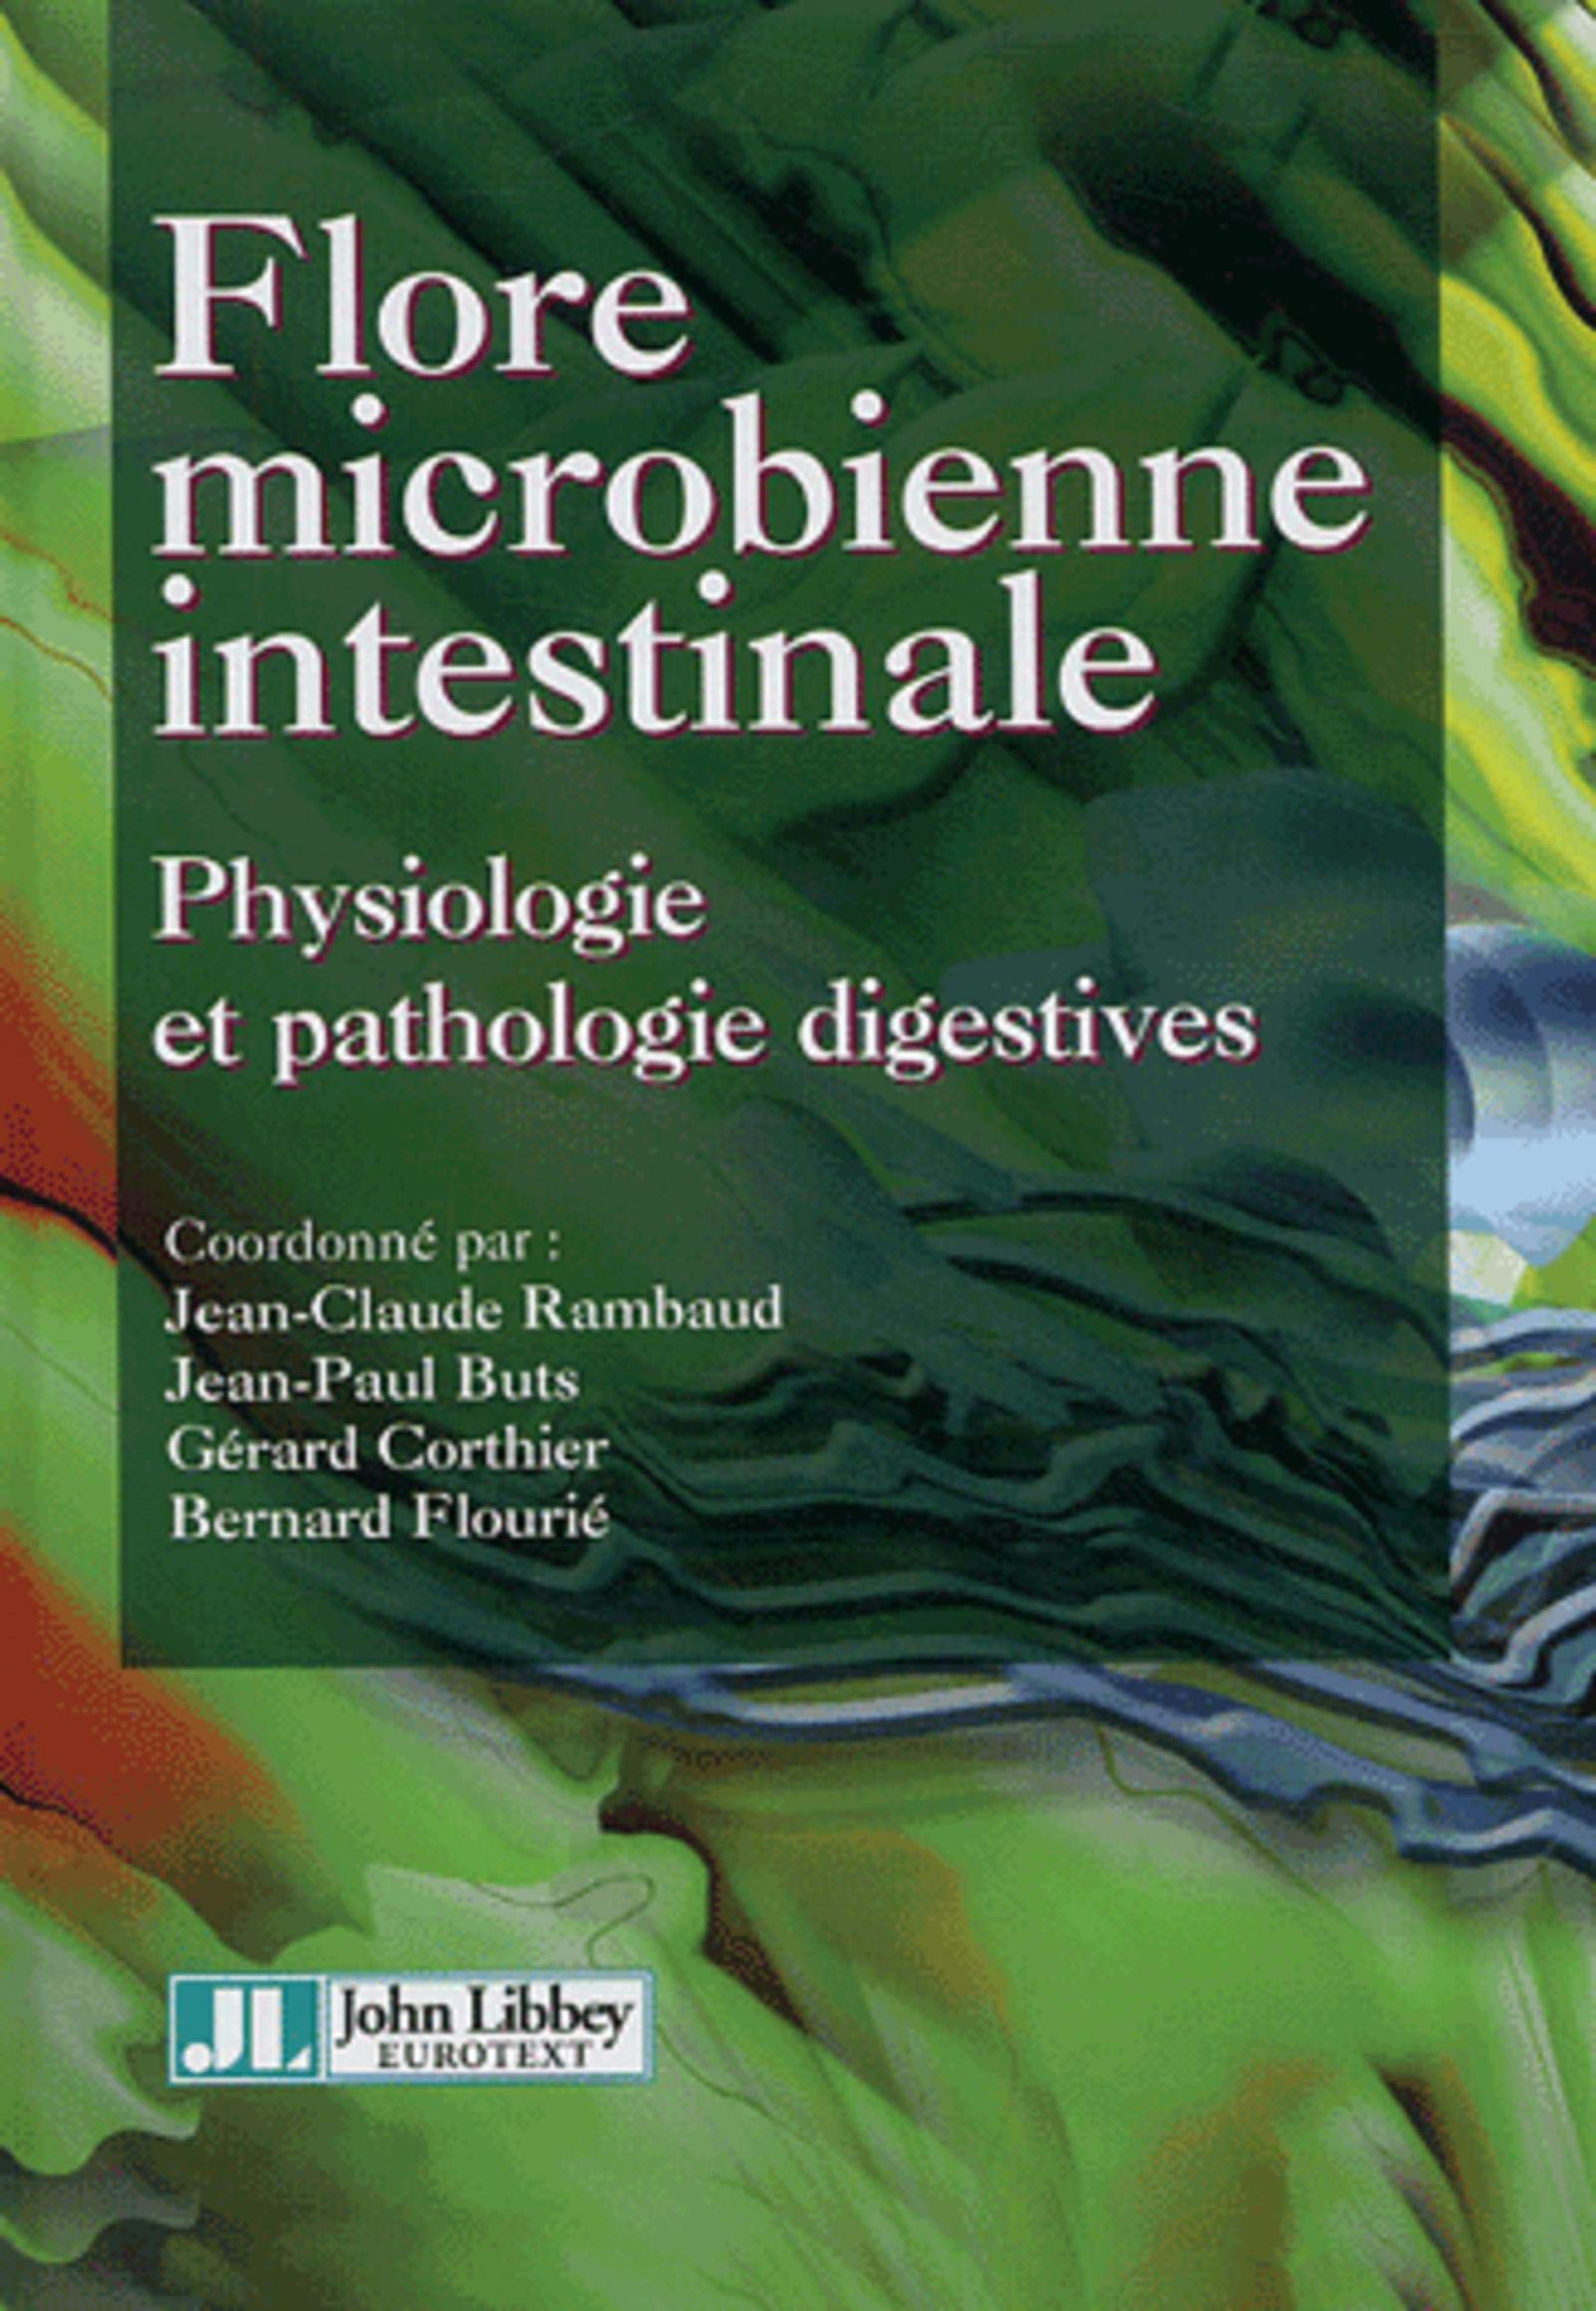 PDF - Flore microbienne intestinale - Physiologie et pathologie digestives Flore microbienne intestinale - Physiologie et pathologie digestives